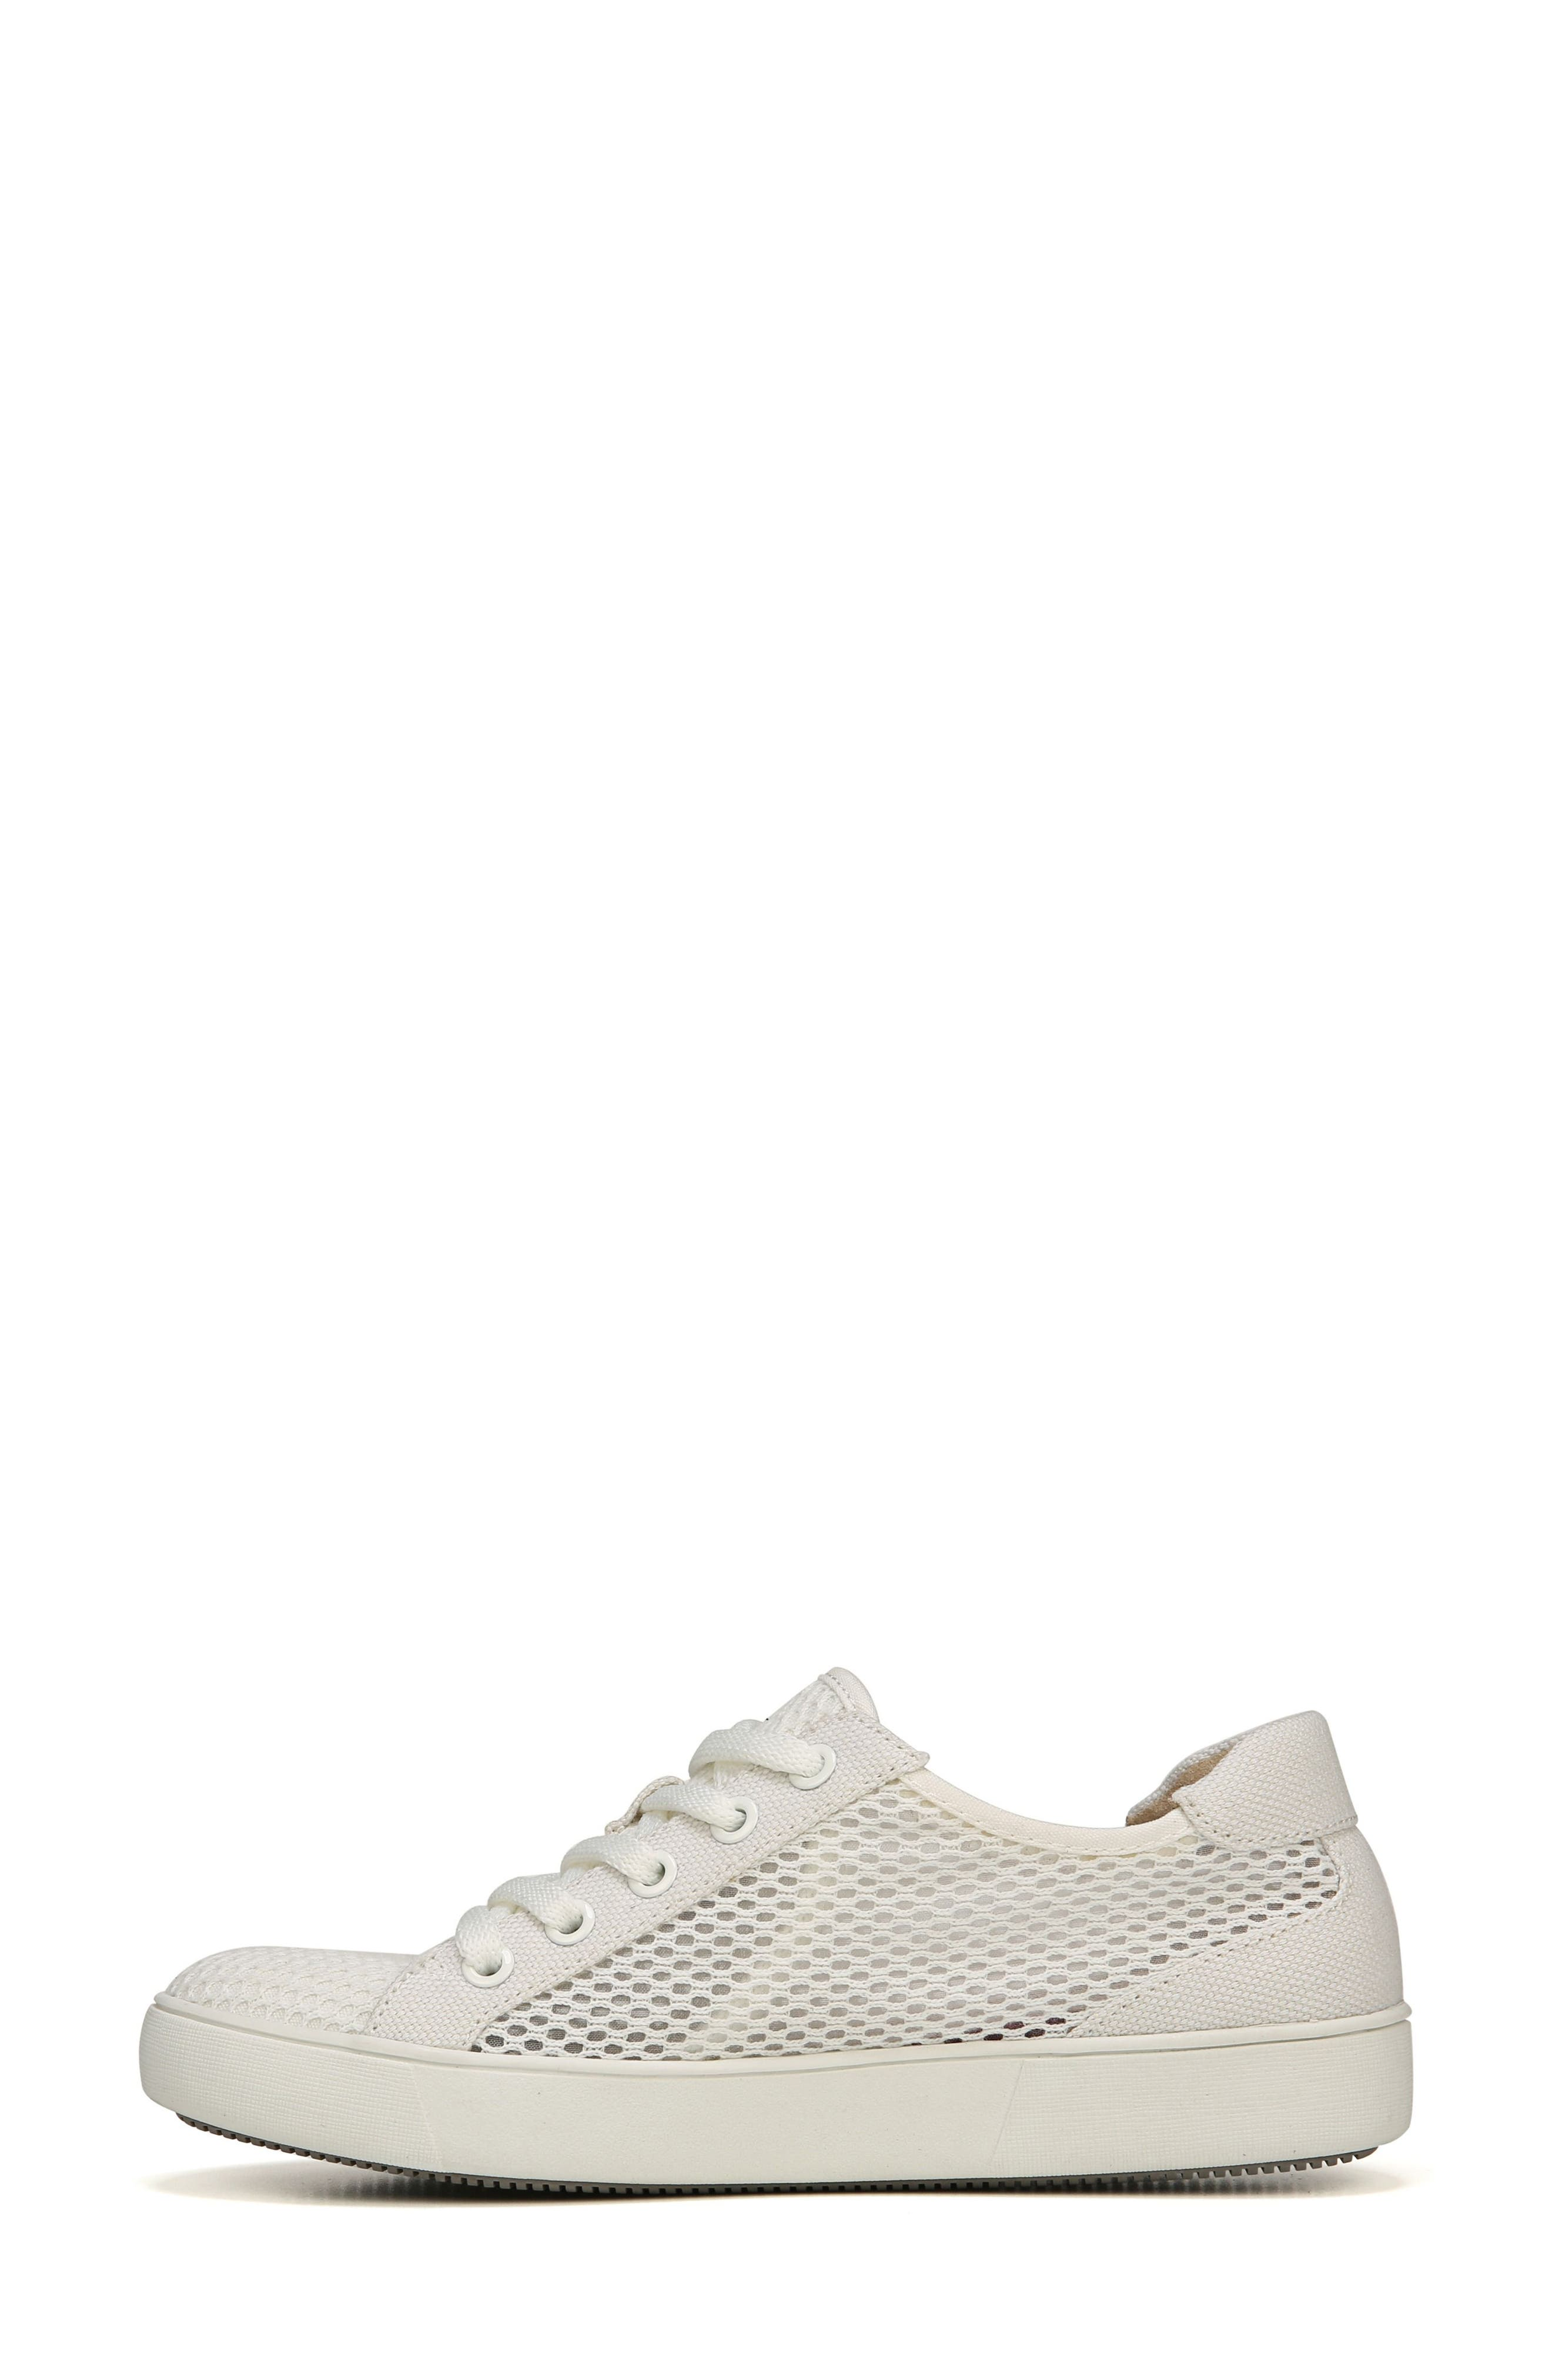 NATURALIZER, Morrison III Perforated Sneaker, Alternate thumbnail 3, color, WHITE FABRIC